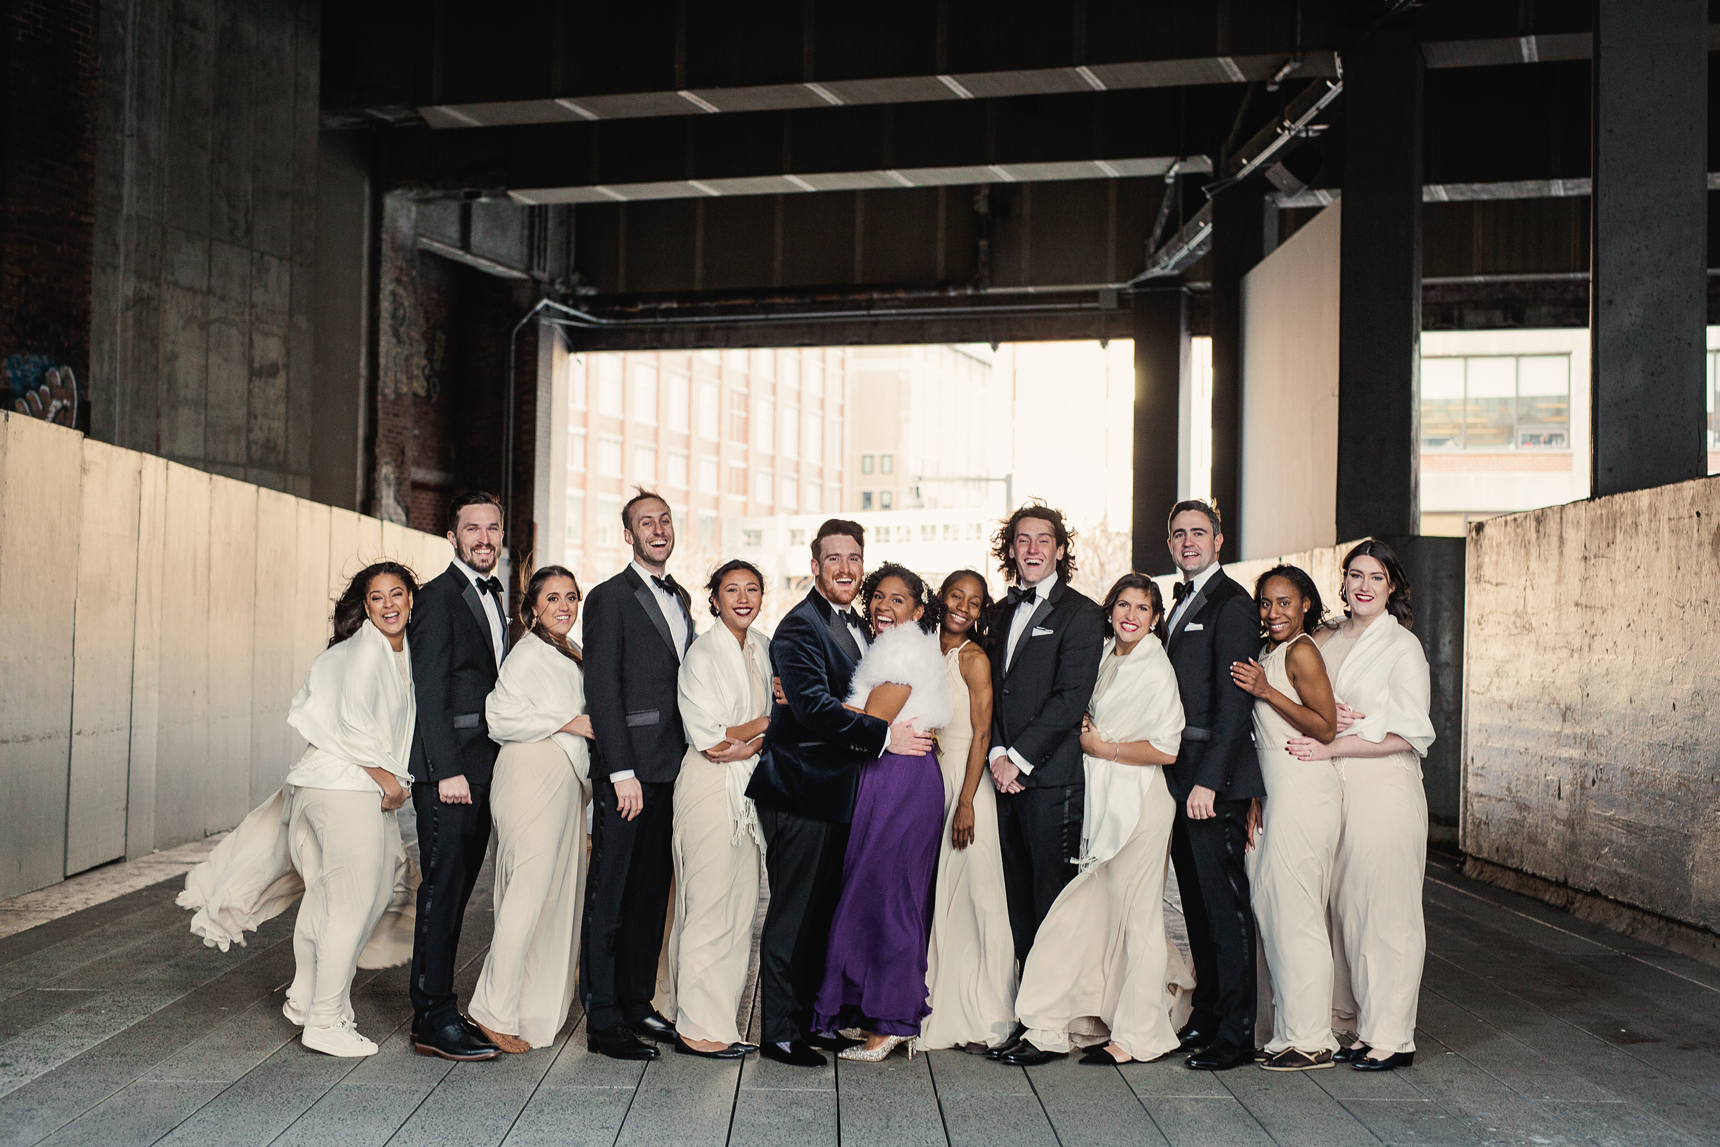 KP_BrooklynWinery_Wedding_NewYork_Photographer053.jpg